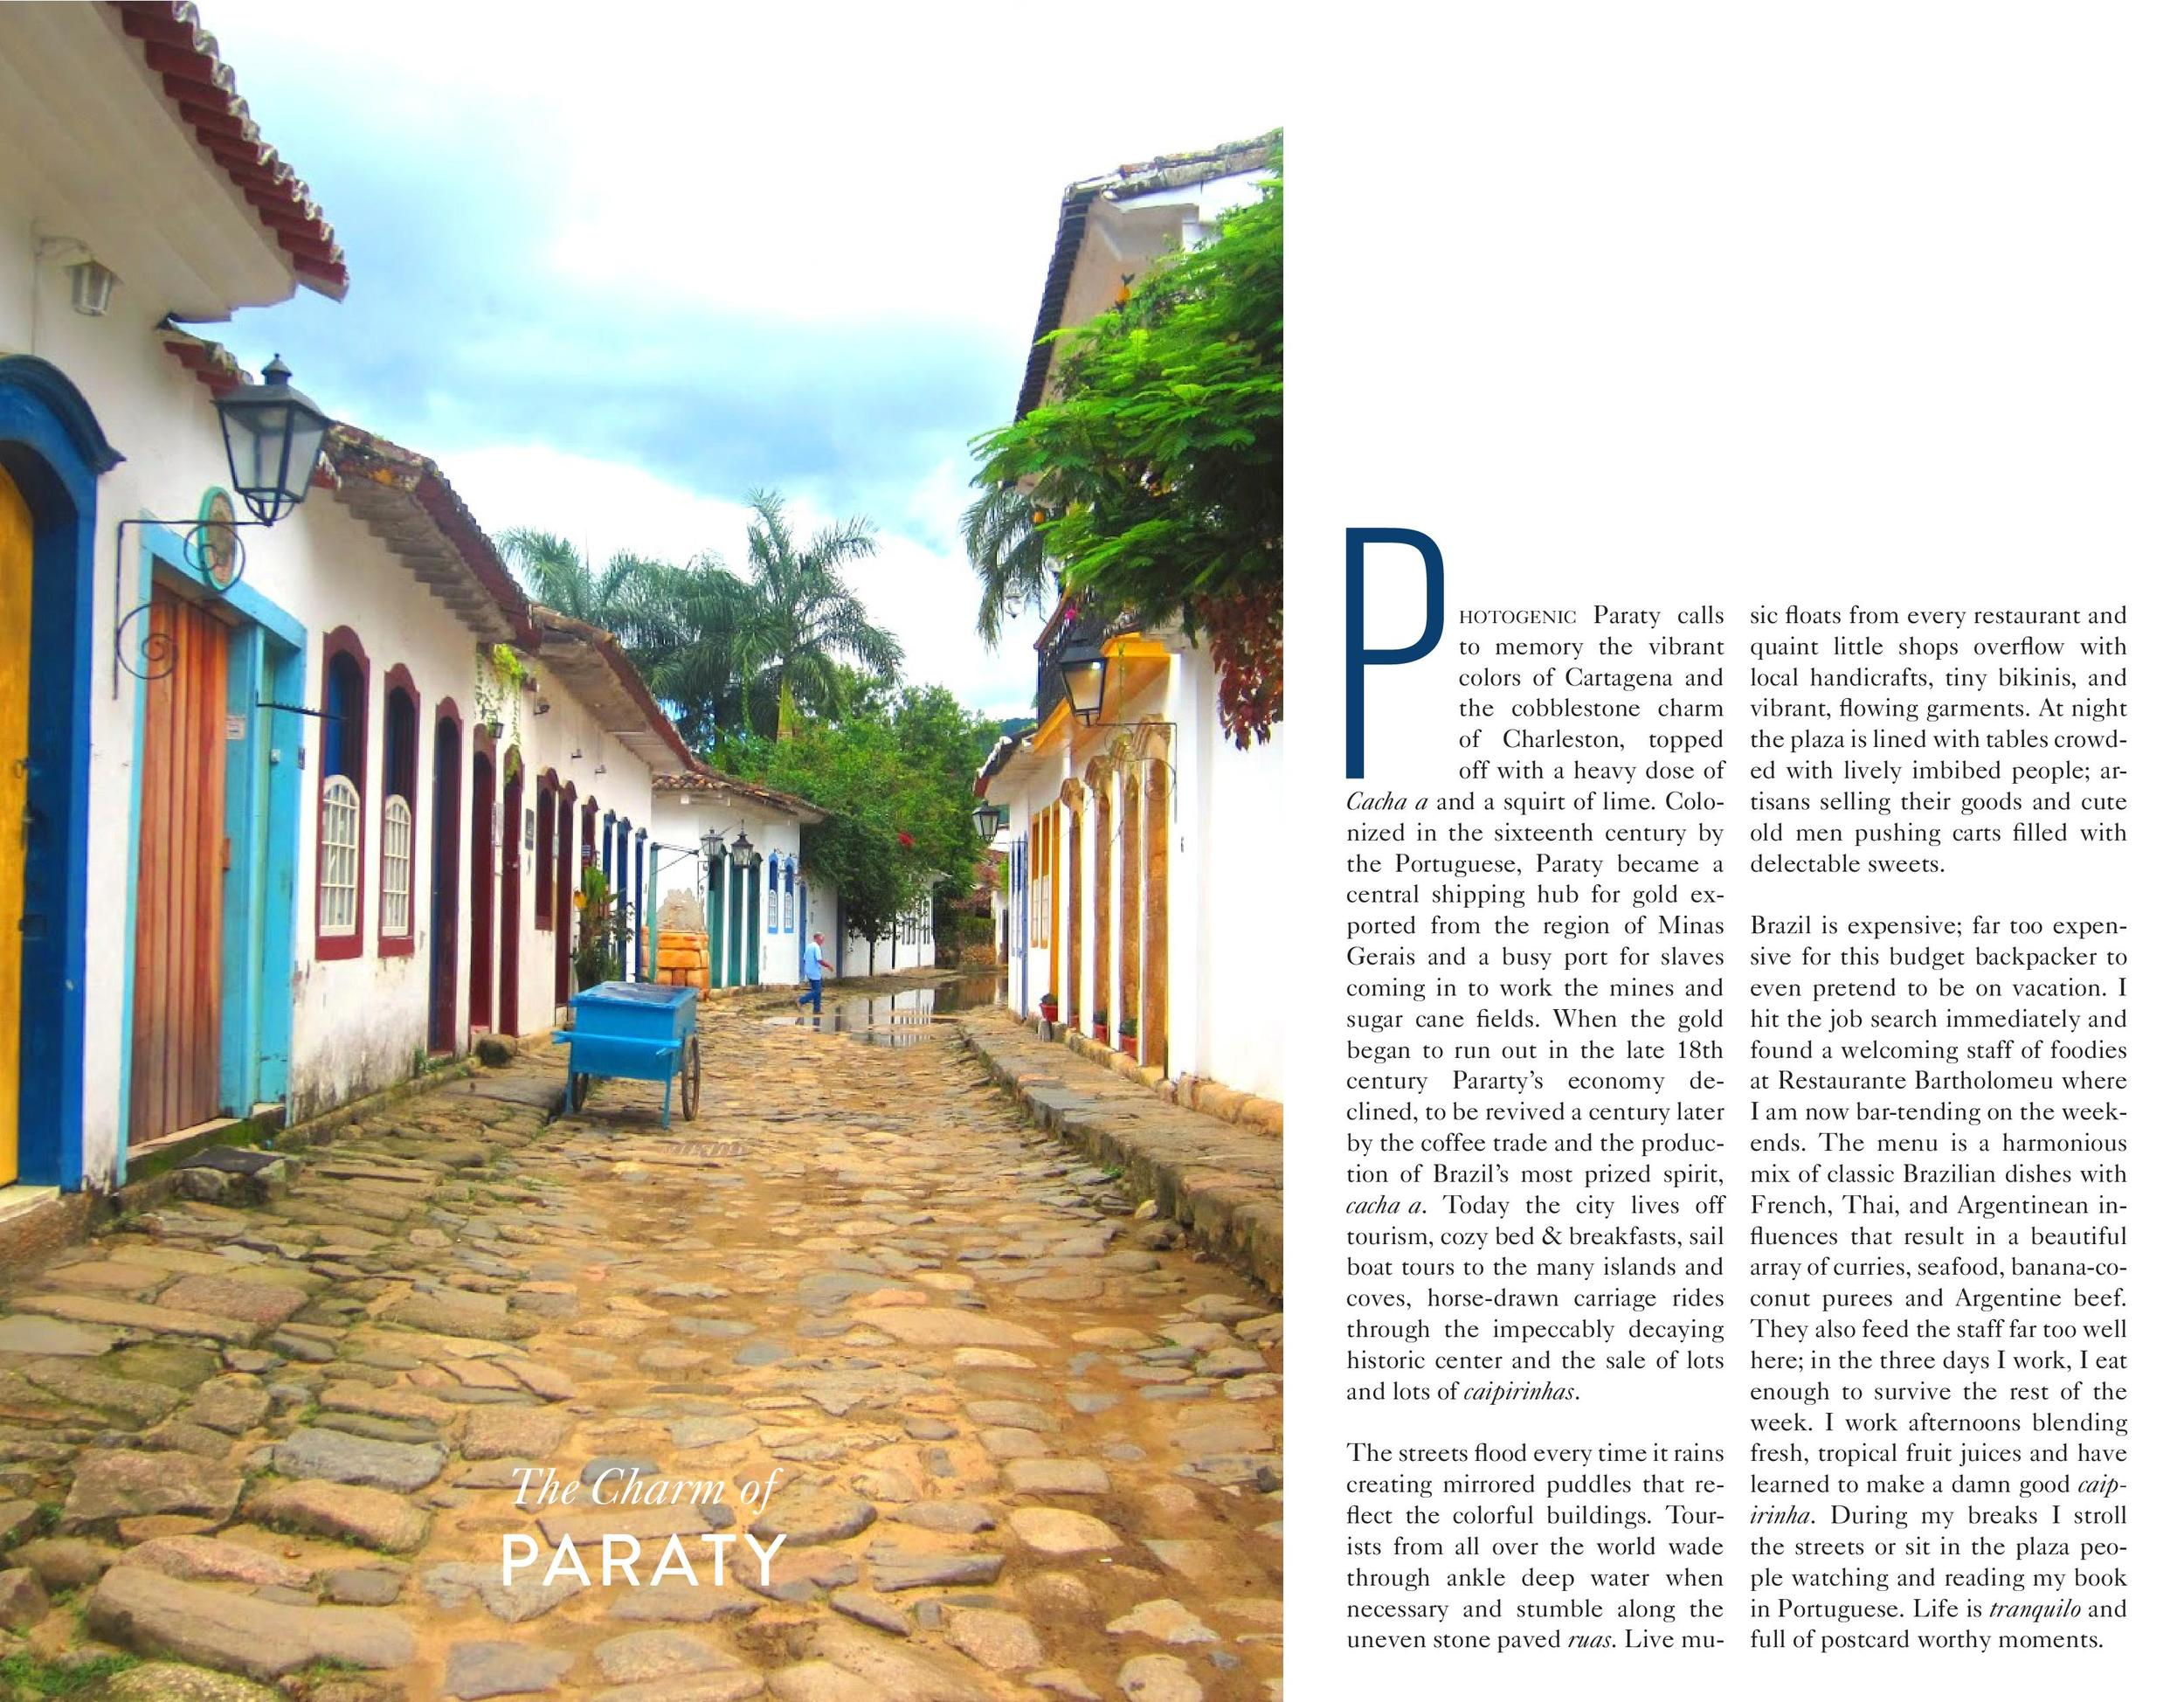 travels_with_a_burro_brazil_02-page-011.jpg